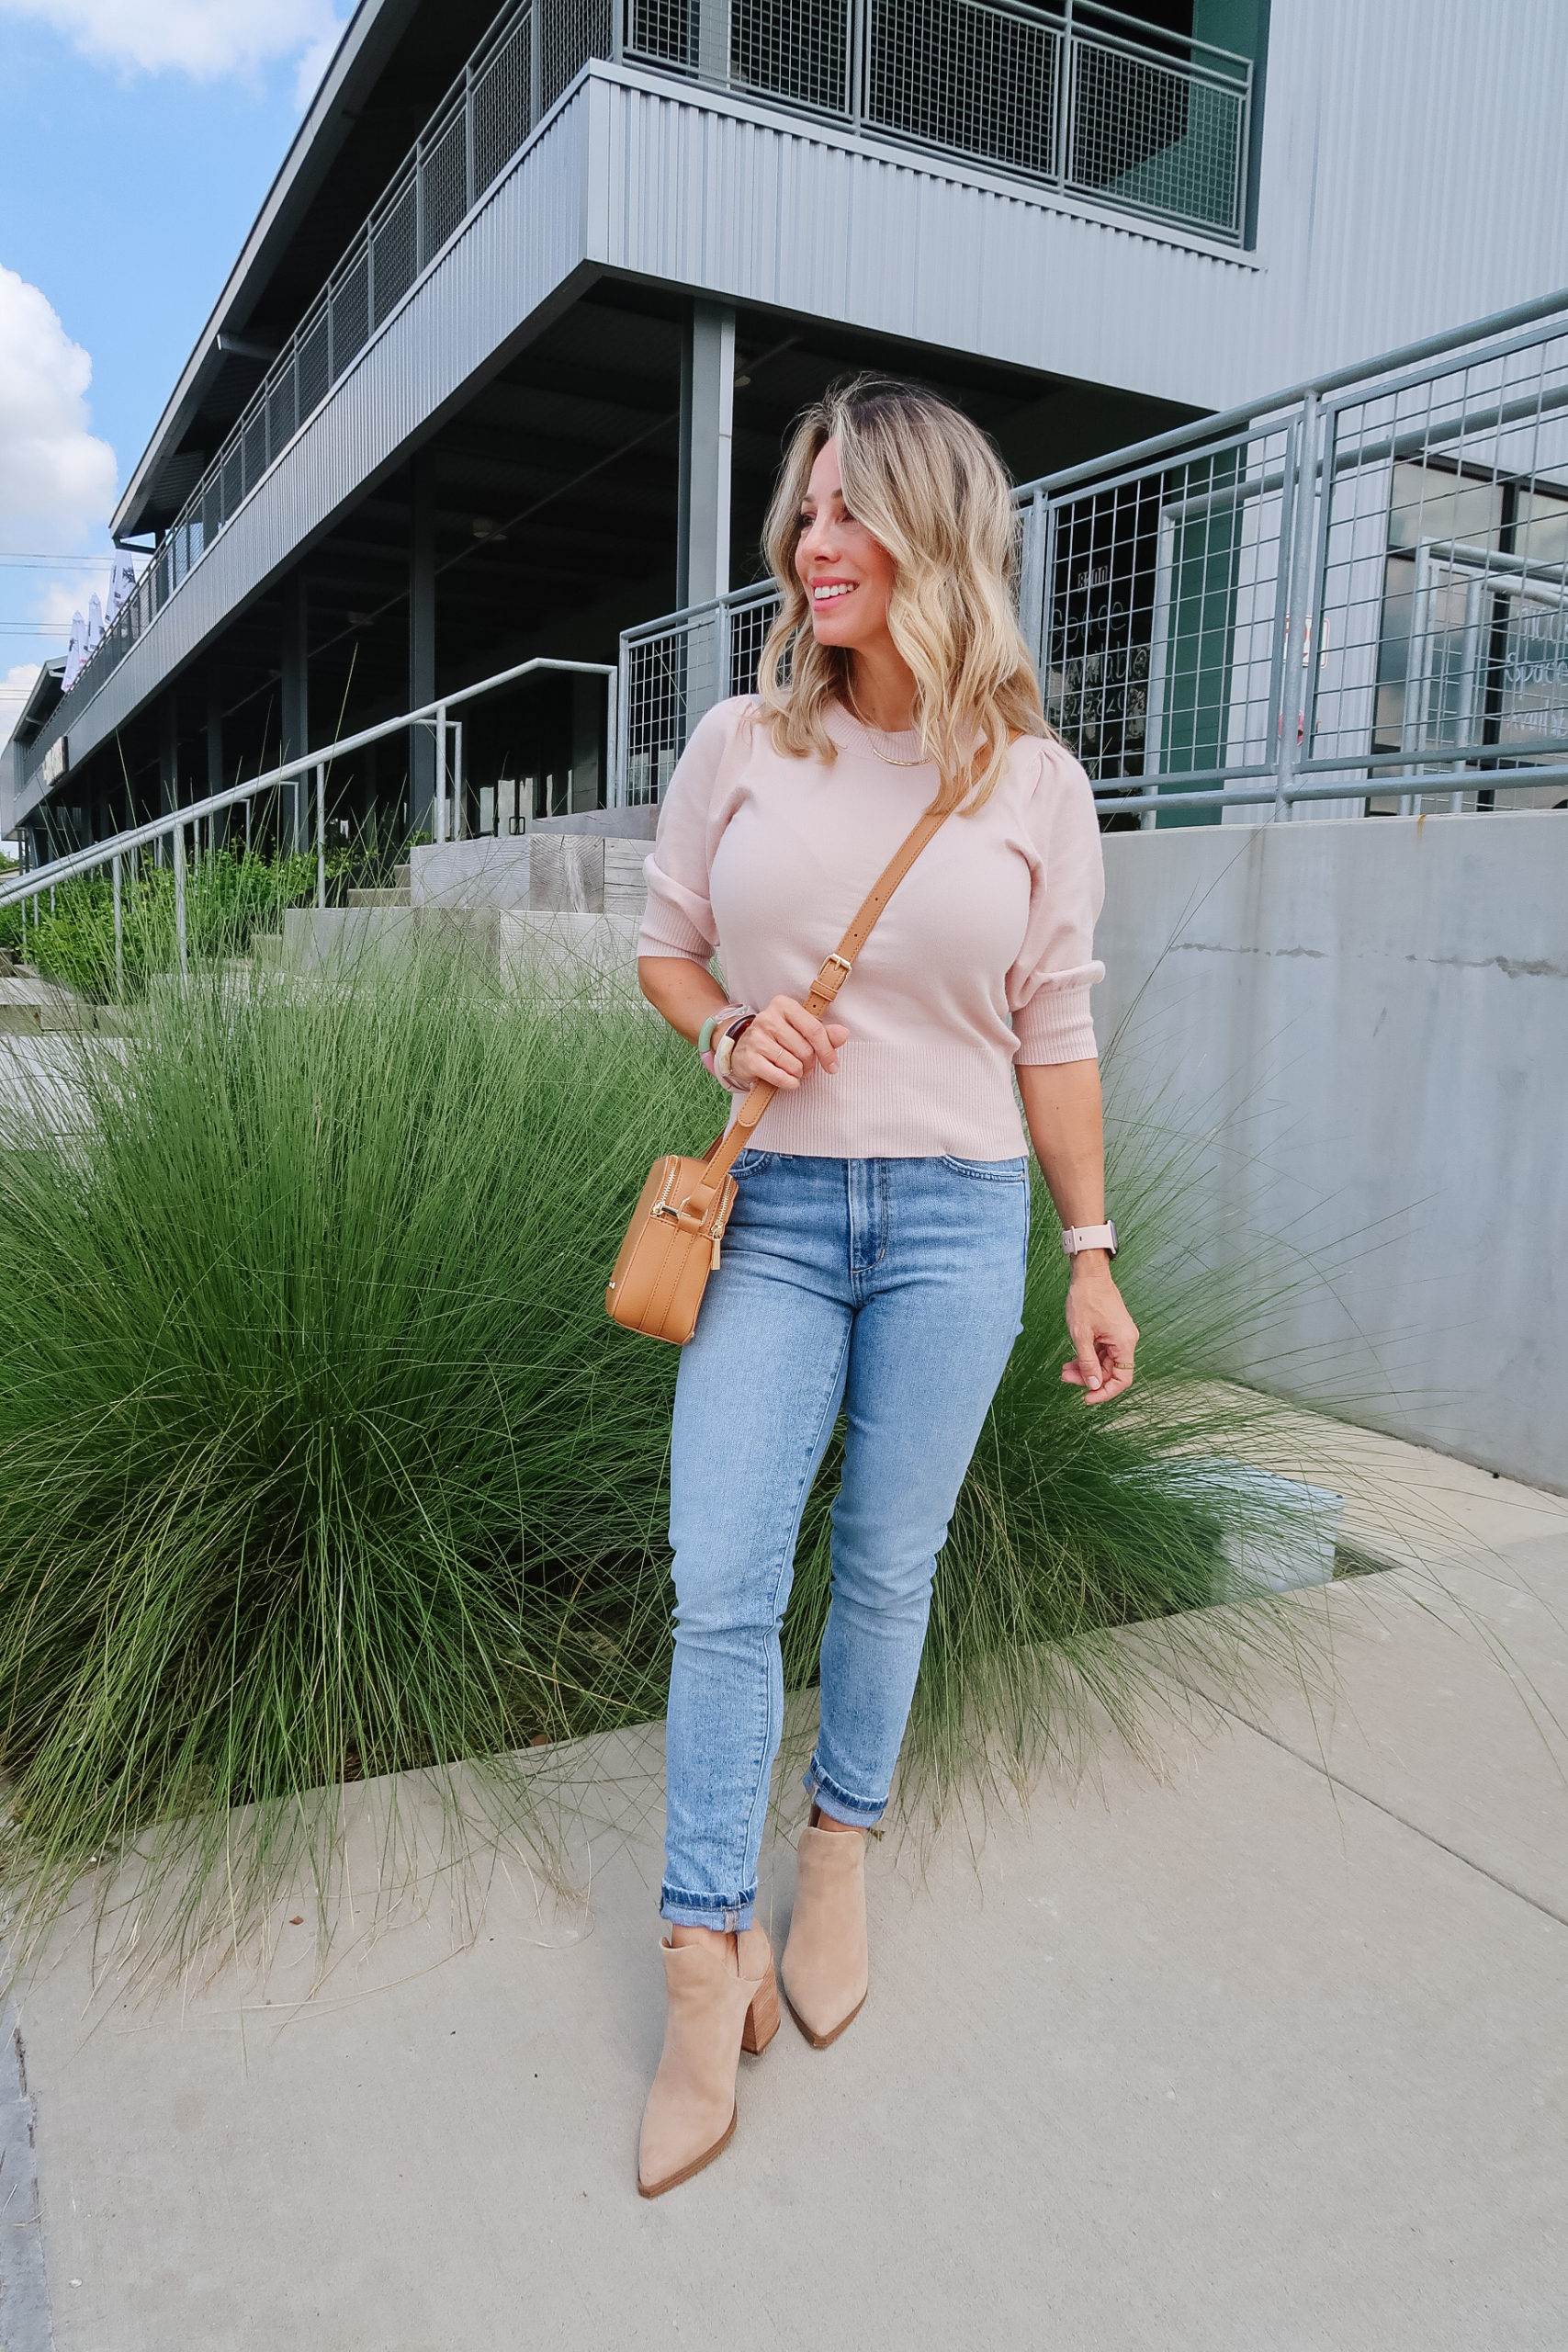 Outfits Lately, Sweater Top, Jeans, Booties, Crossbody